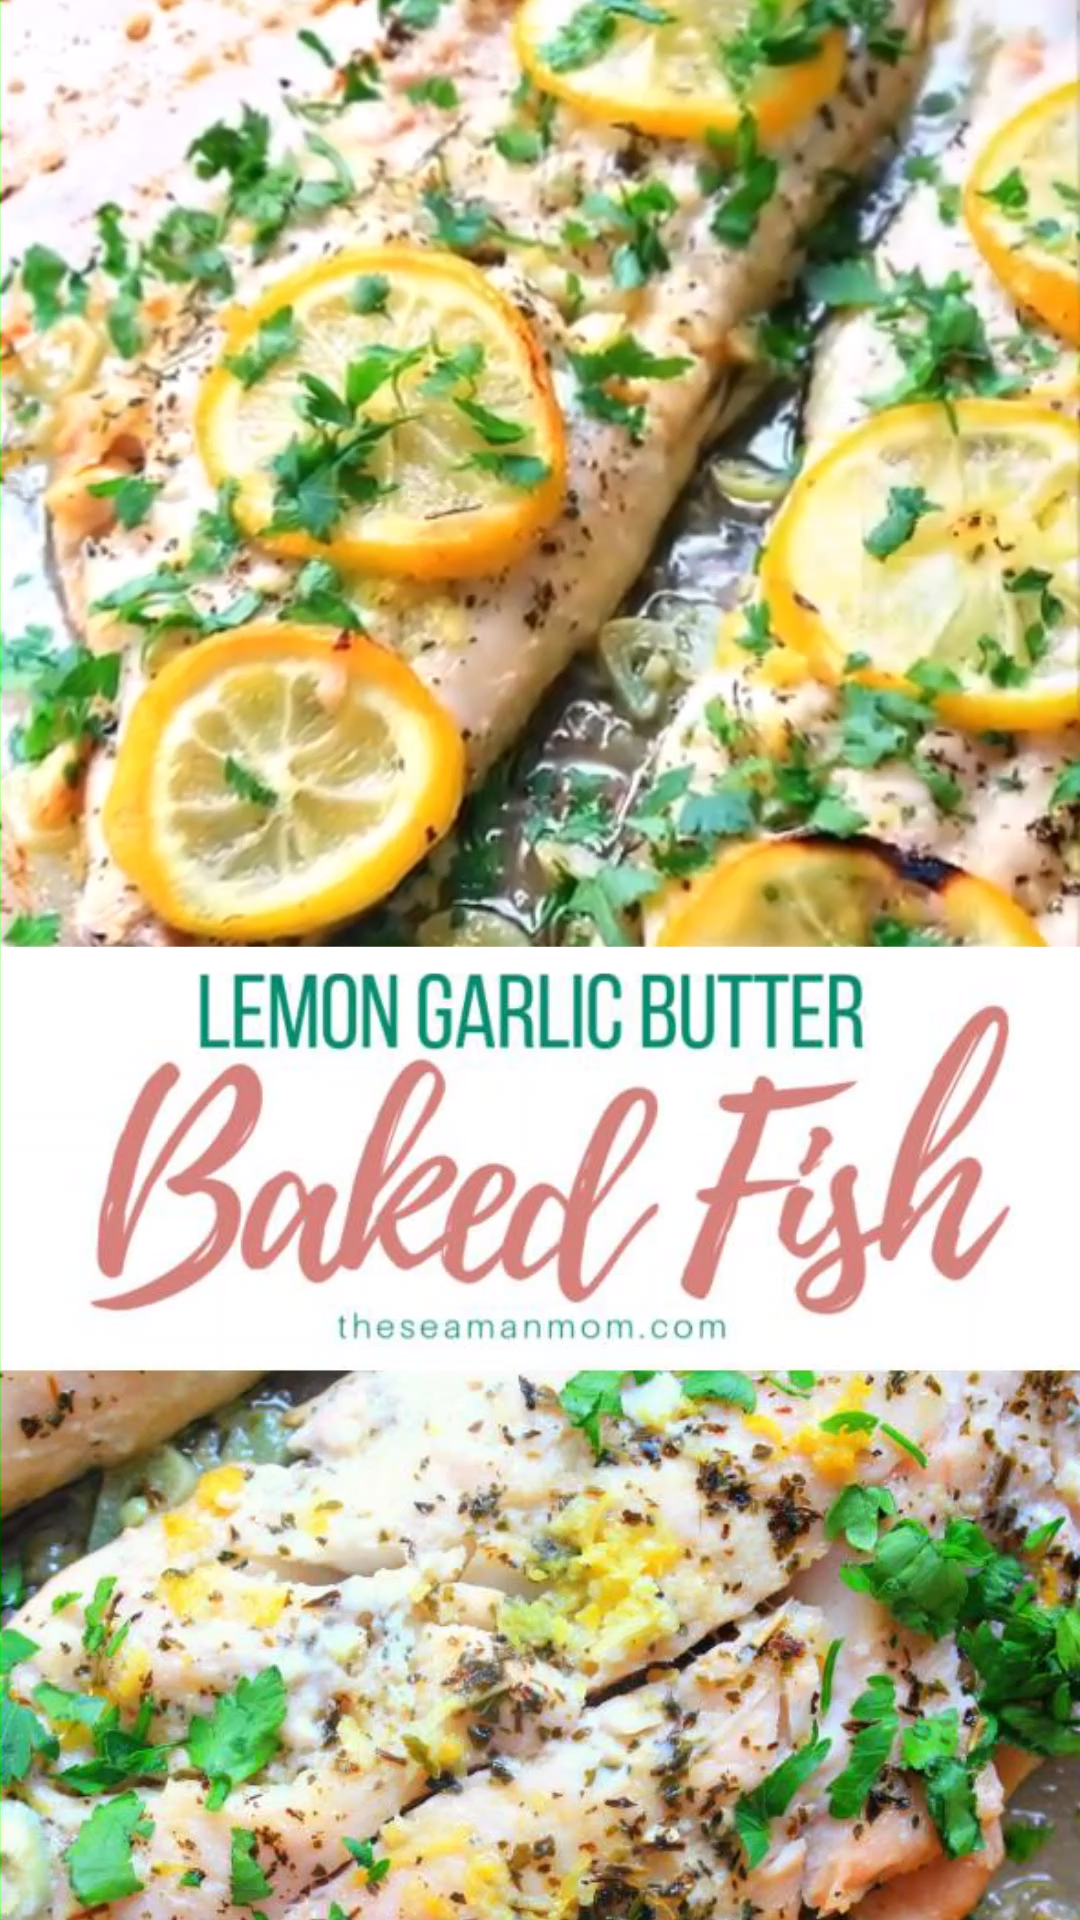 BAKED FISH WITH GARLIC LEMON & BUTTER -   Quickly pull together a speedy meal, yet fancy enough to